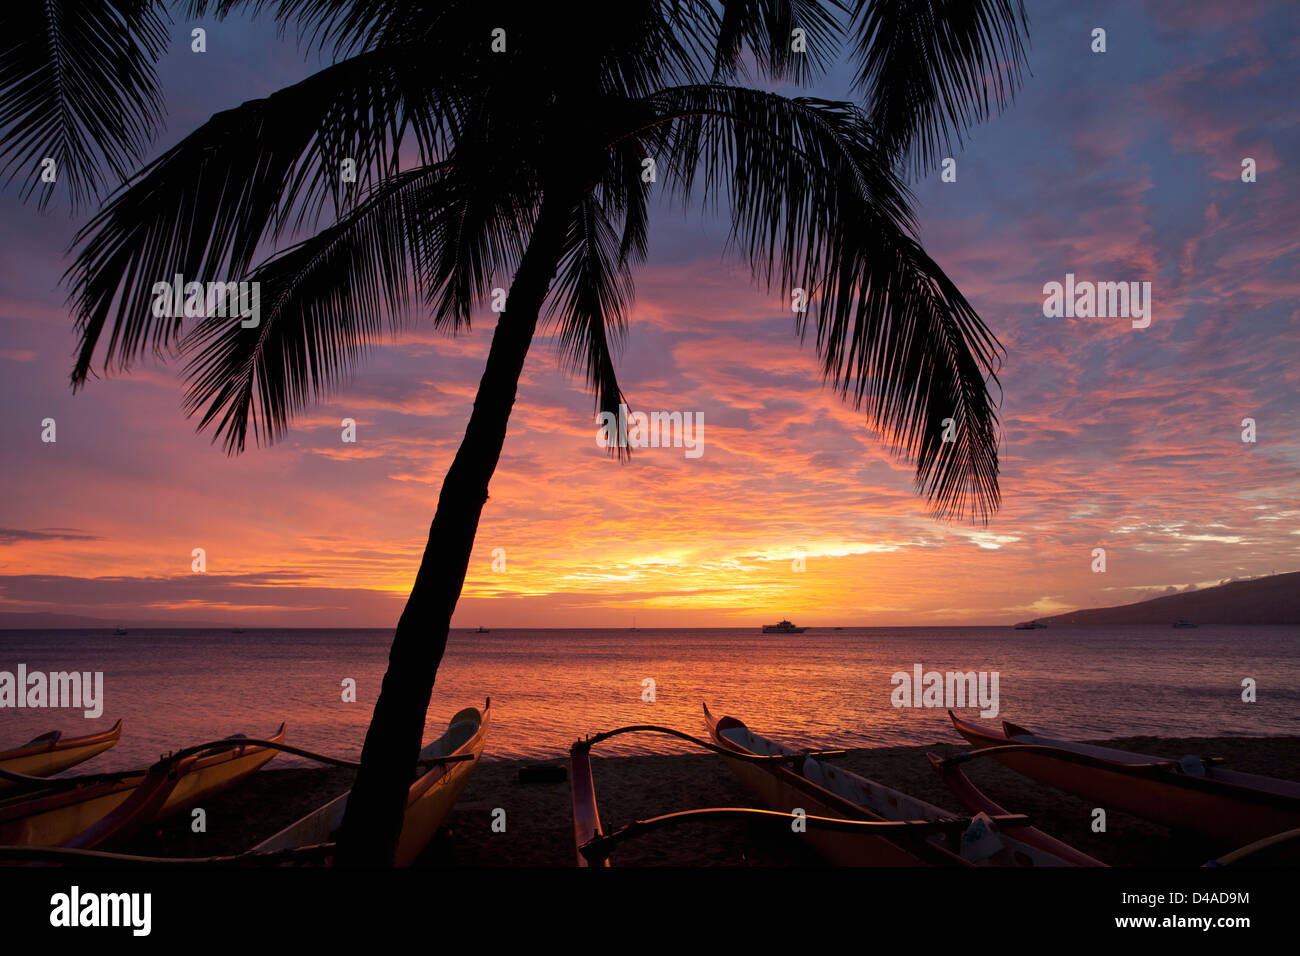 Spectacular sunset at Kihei, Maui, Hawaii. Stock Photo